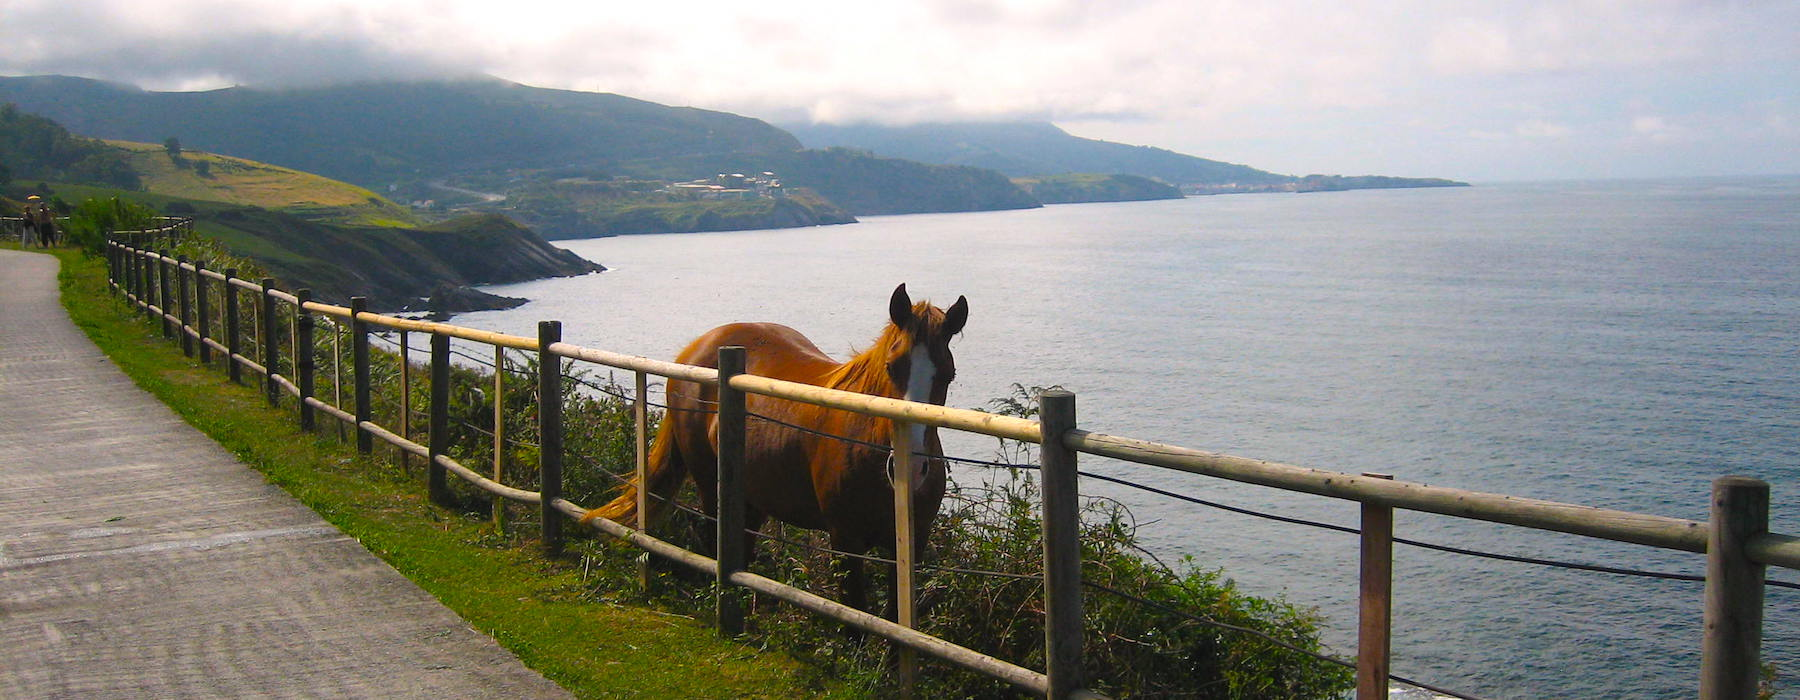 Horse in Spain Basque Country